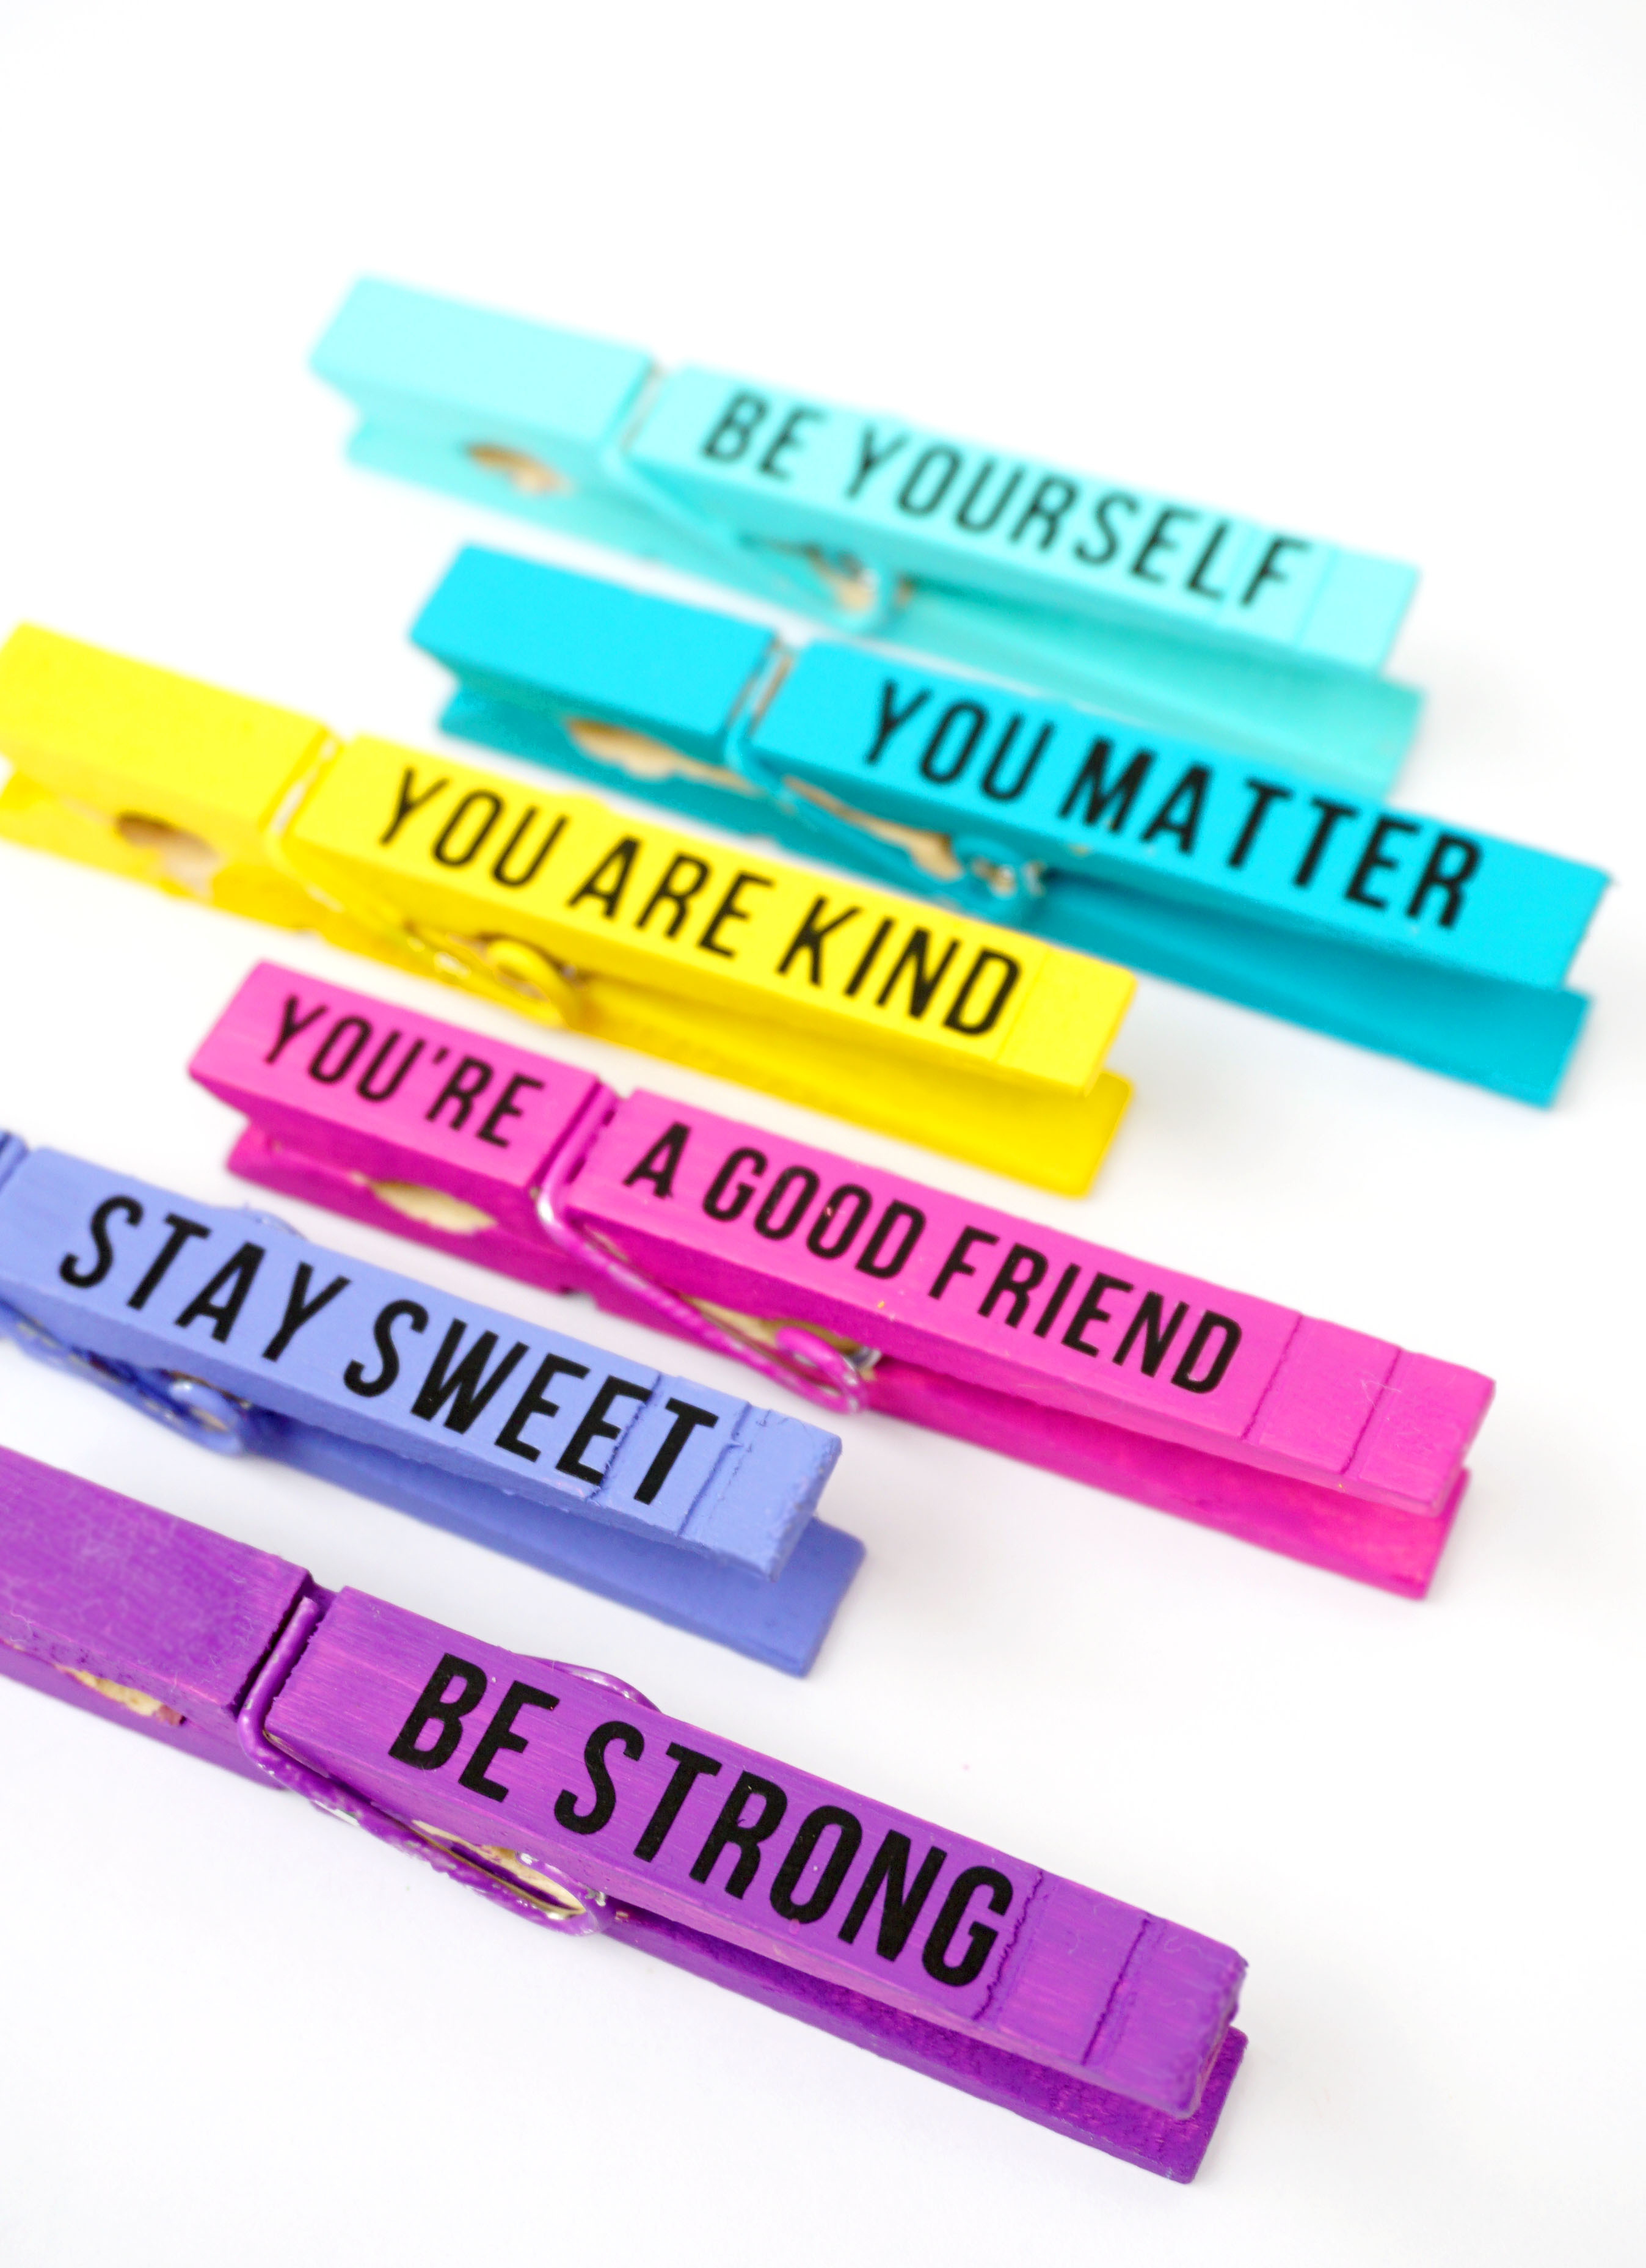 Kindness Clips Random Acts Of Kindness Idea Happiness